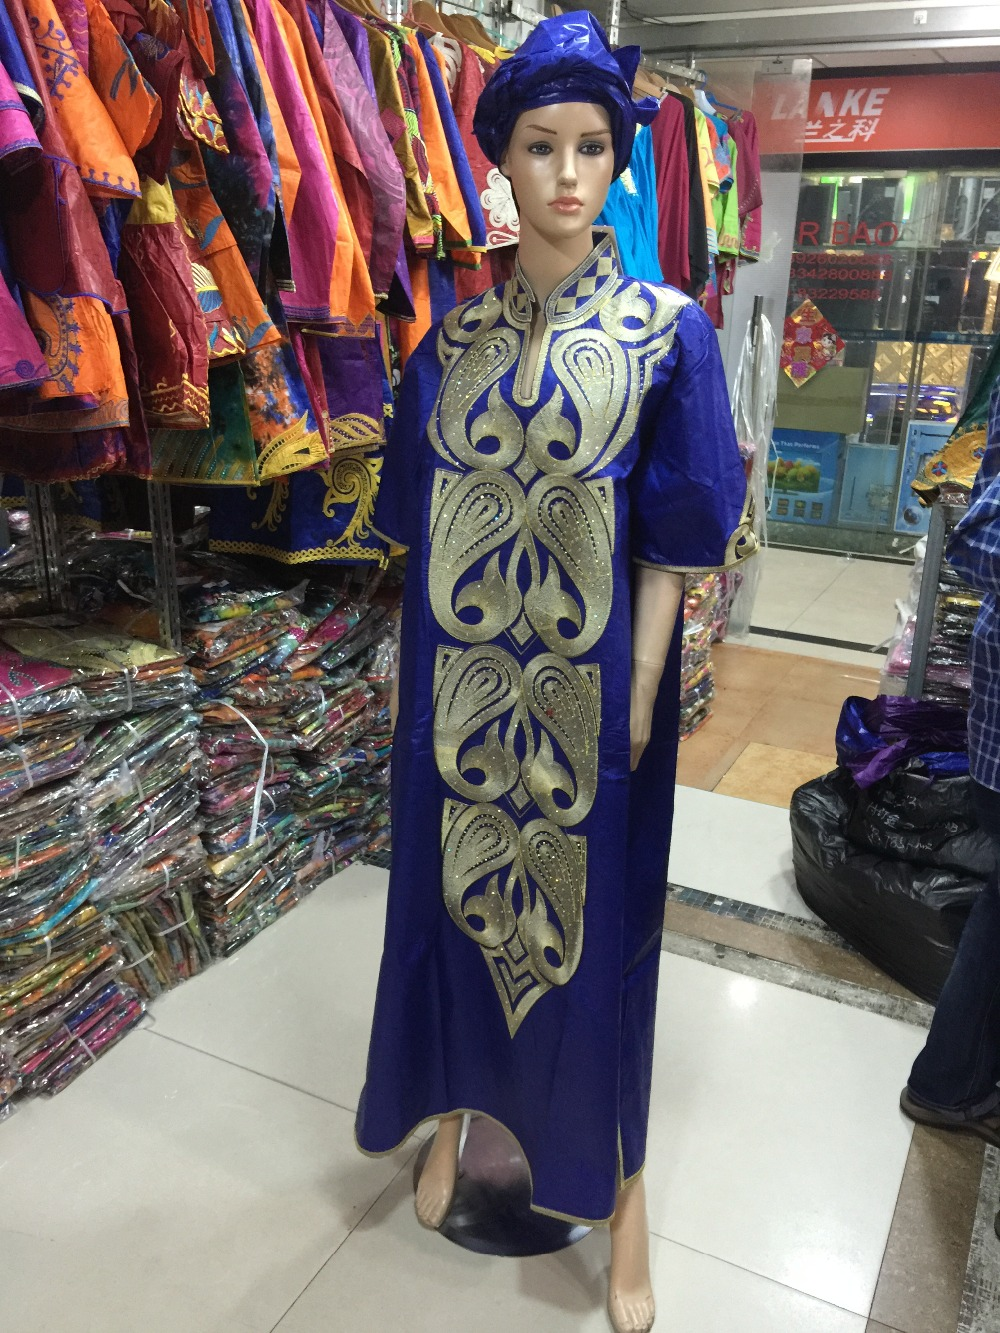 2016 African women dress clothing Bazin traditional cotton embroidered robes process(Free DHL Shipping)S2432